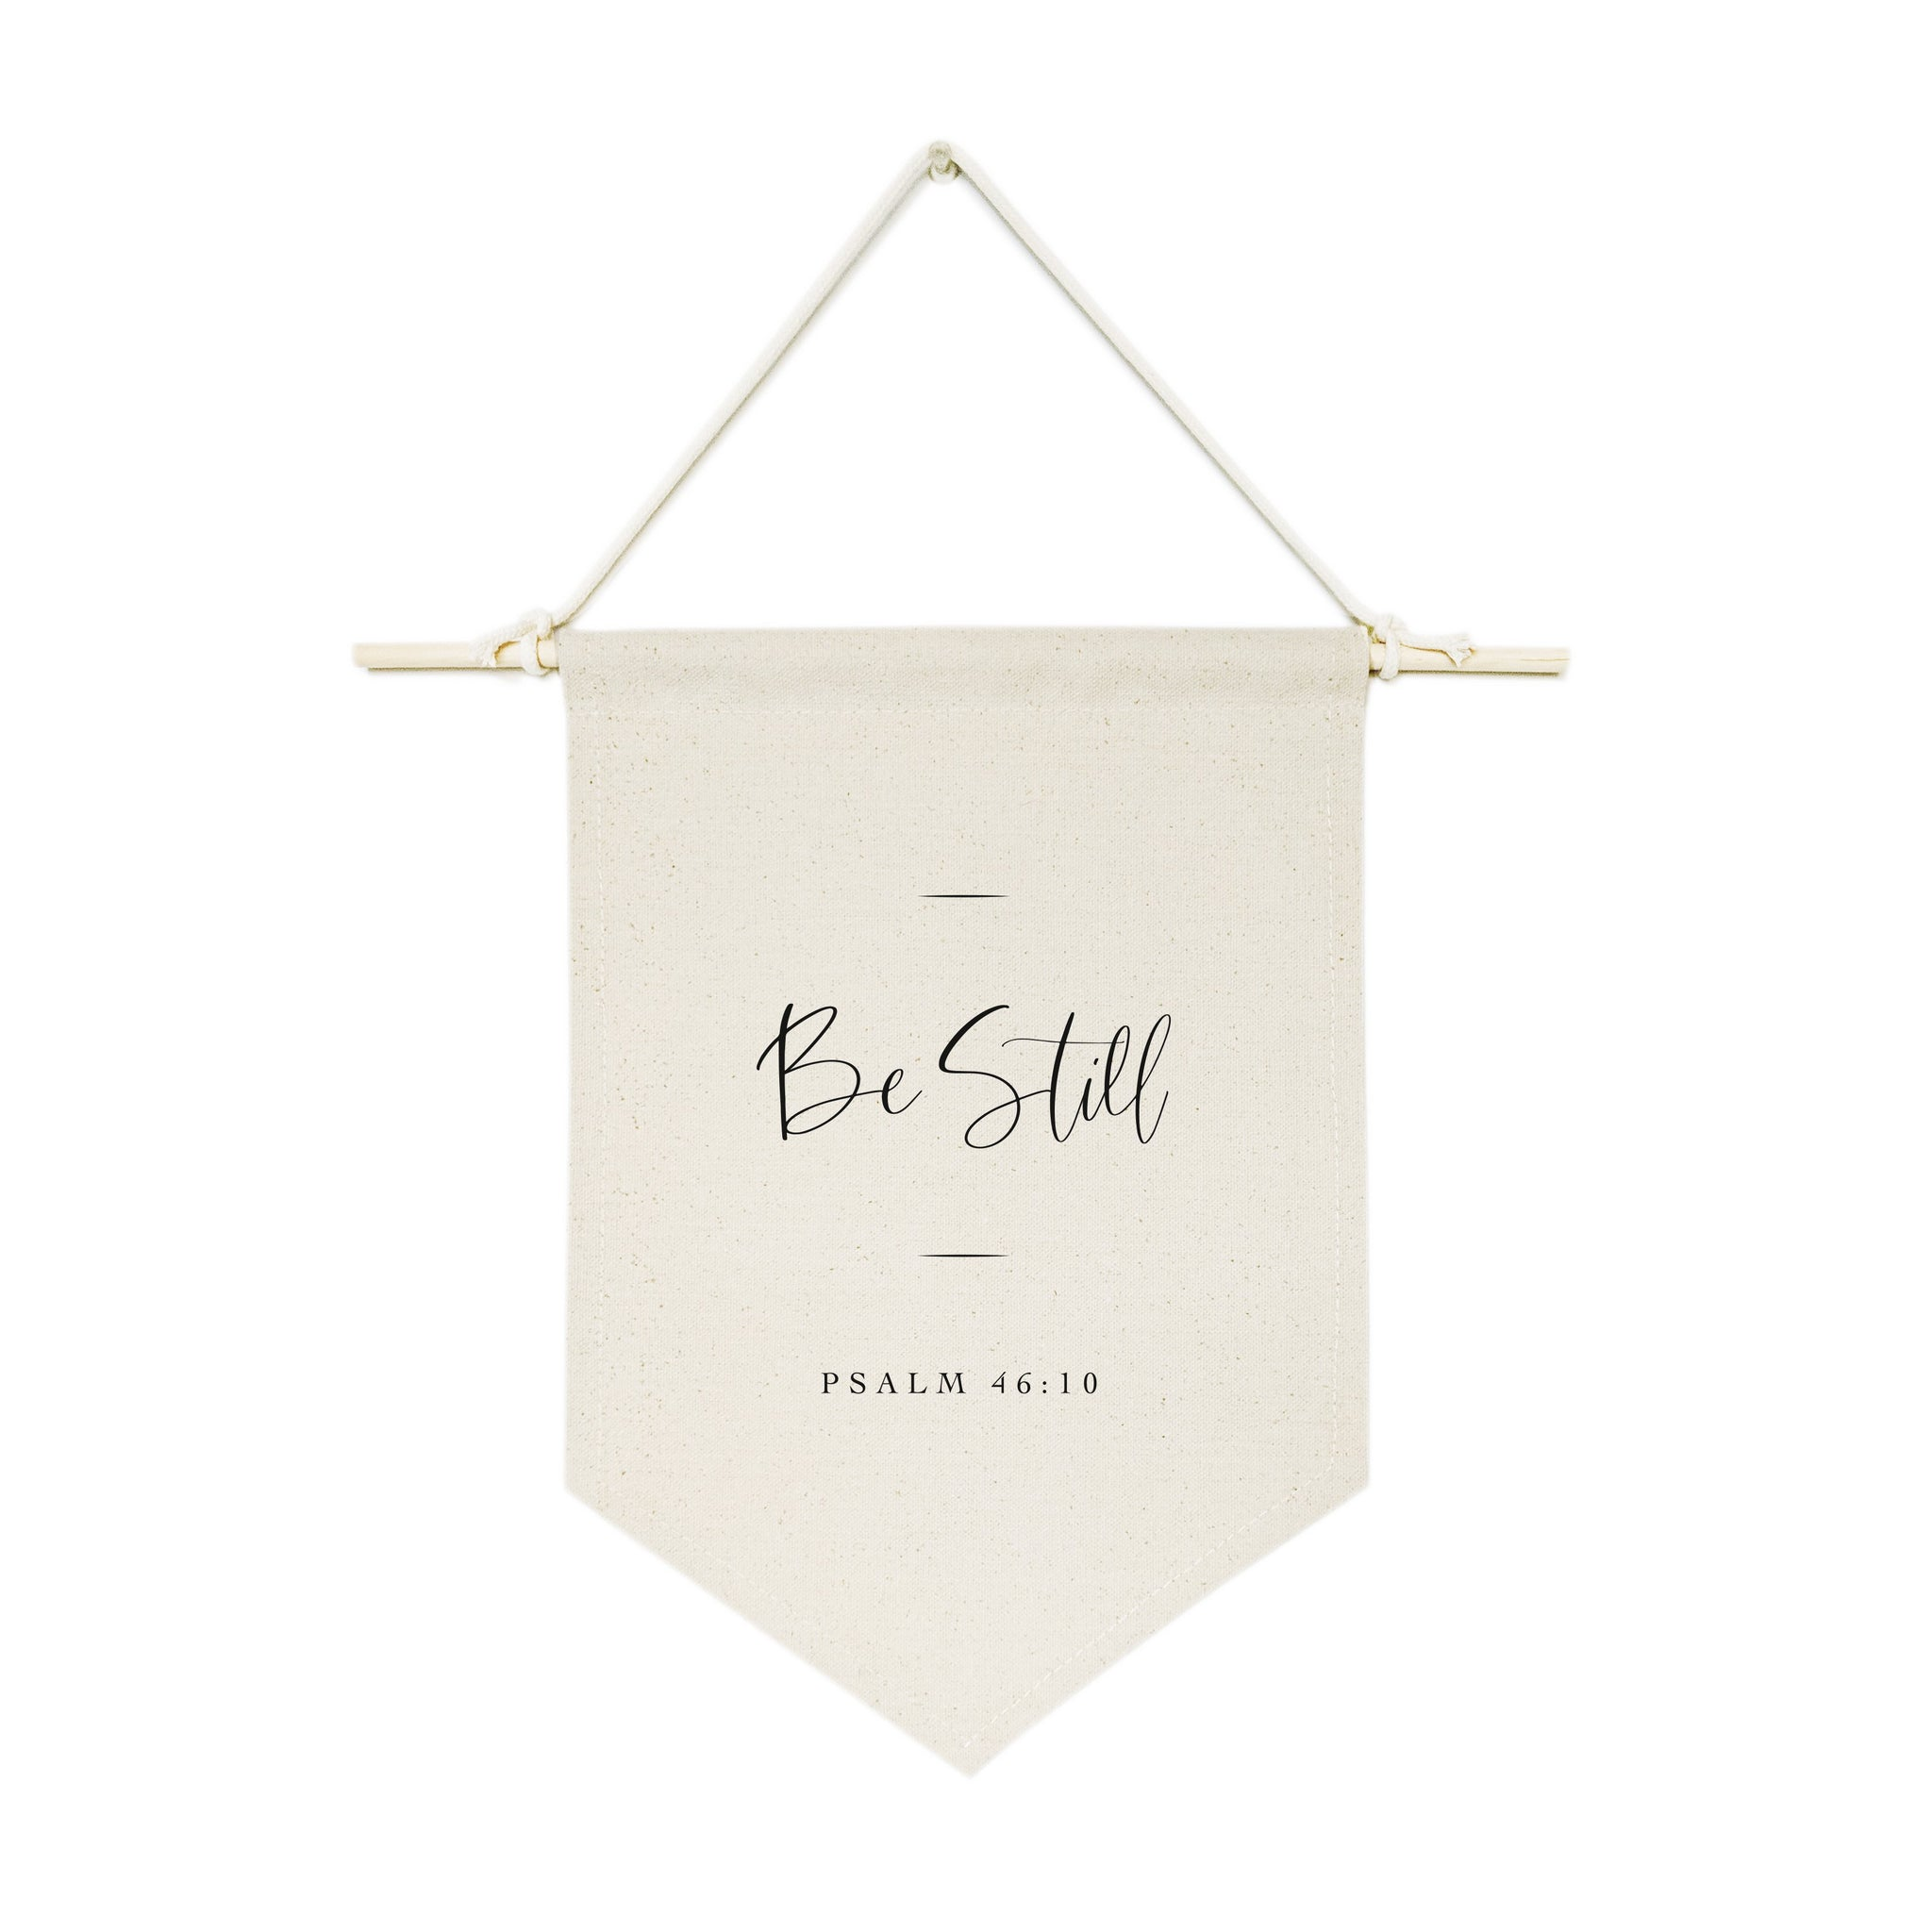 Be Still, Psalm 46:10 Hanging Wall Banner Cotton Canvas Scripture, Bible Hanging Wall Banner